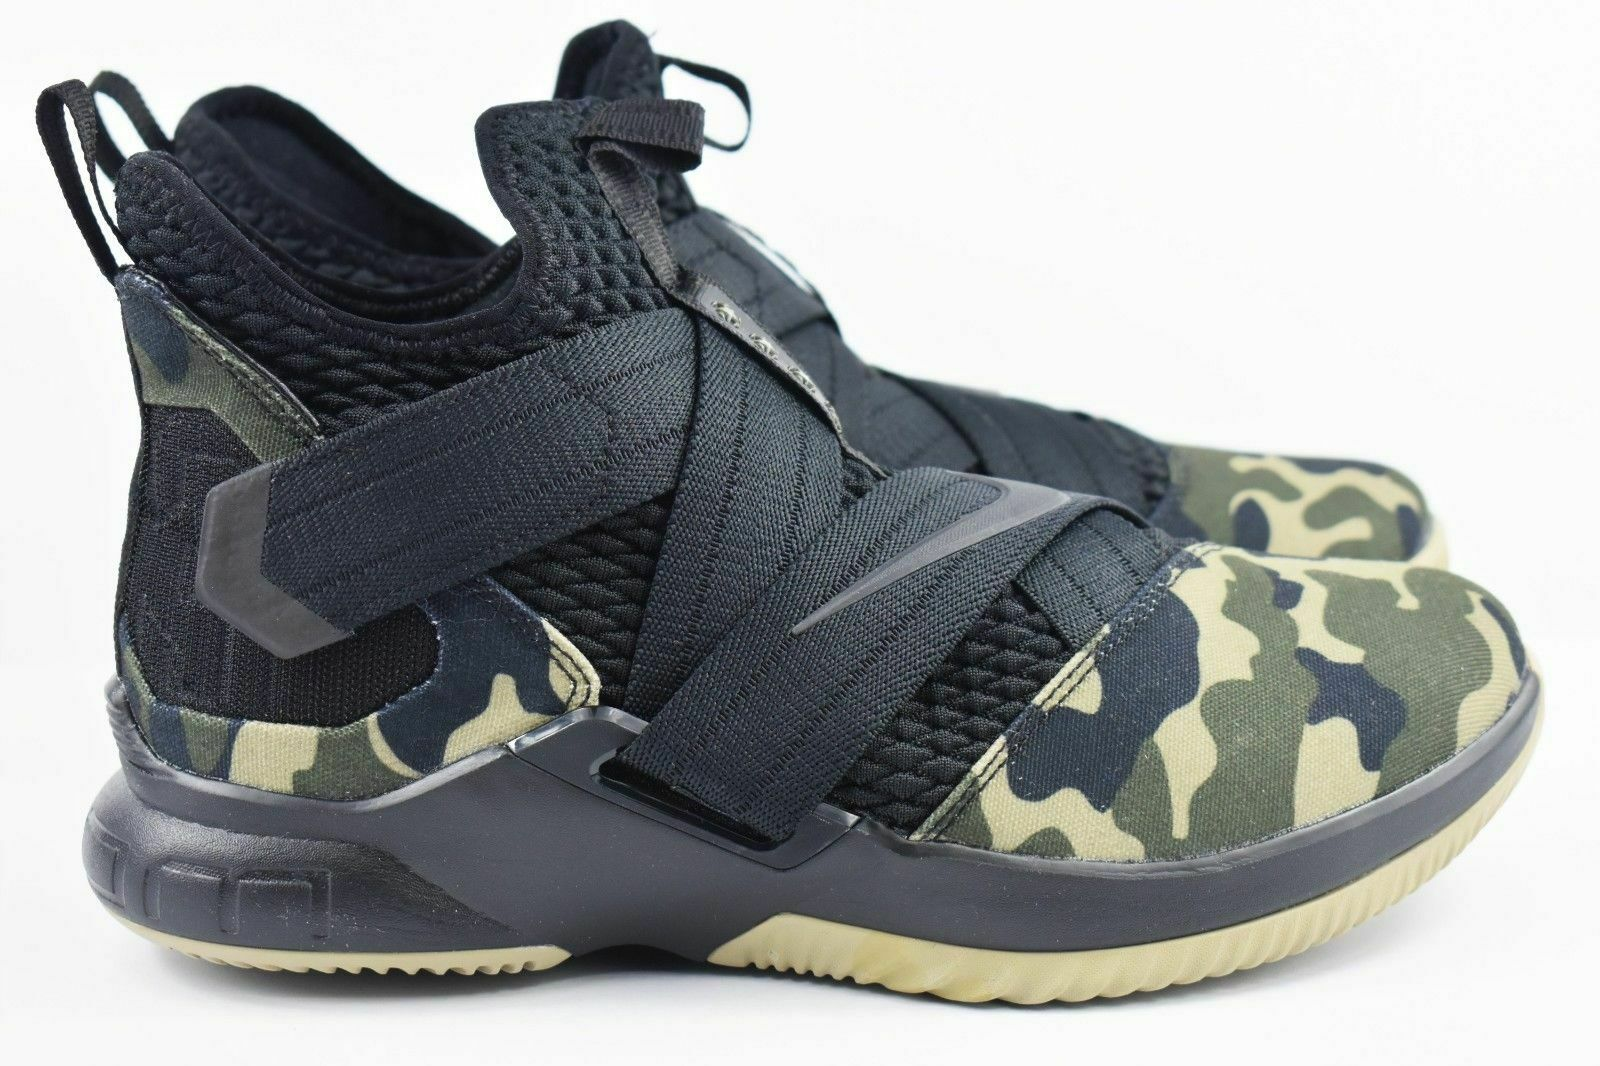 Nike Lebron Soldier XII 12 SFG Mens Size 10 Basketball shoes Camo AO4054 001